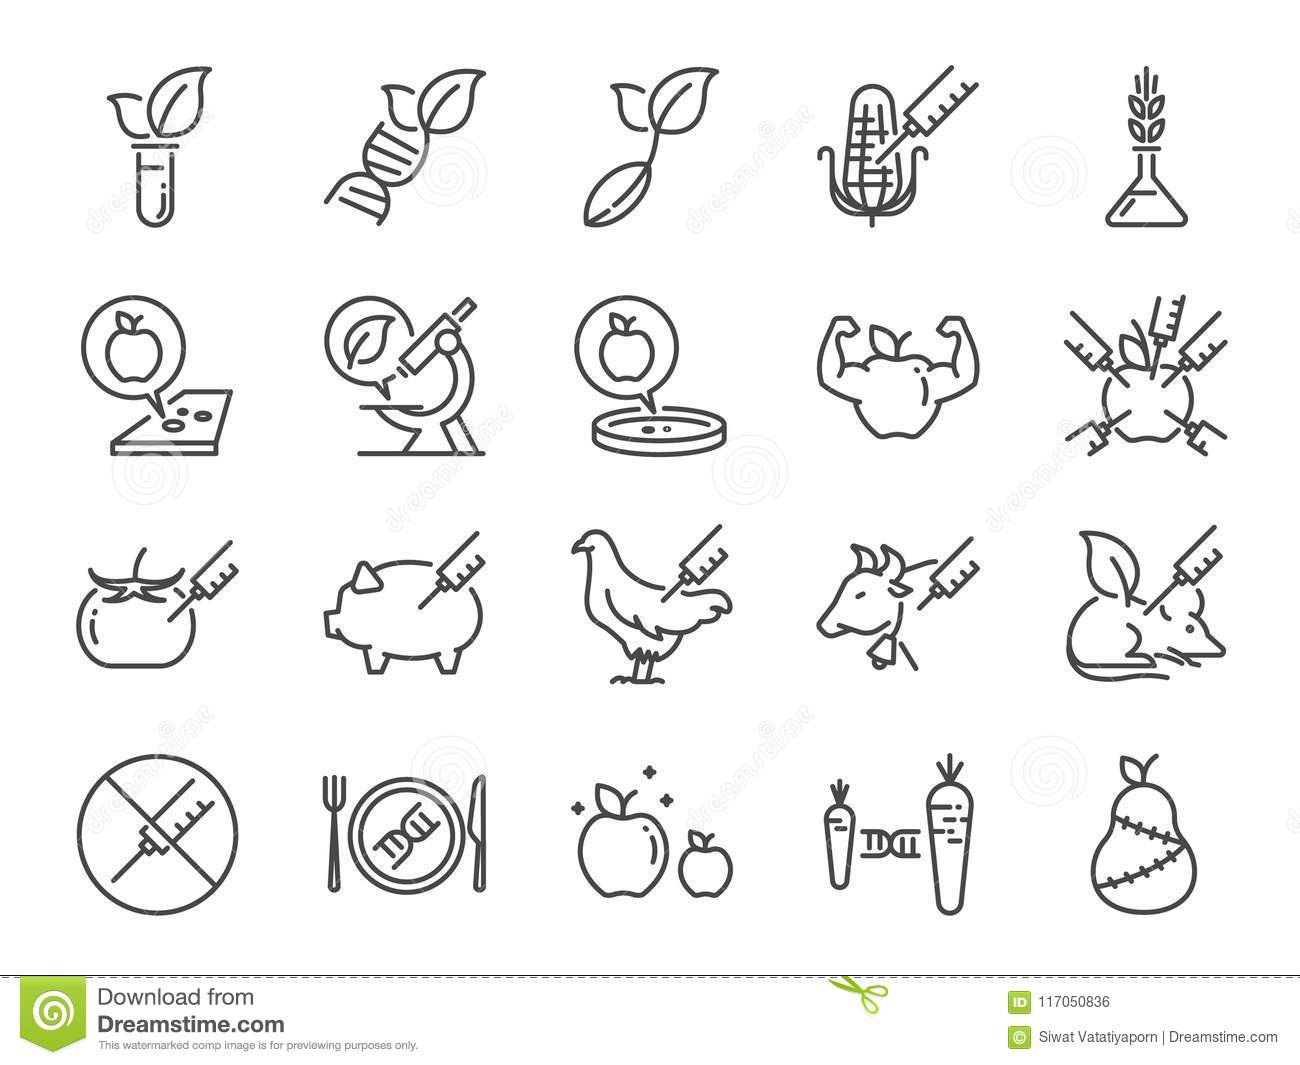 GMOs icon set. Included the icons as Genetically Modified Organisms, science, genetics, improve, biotechnology, modified.